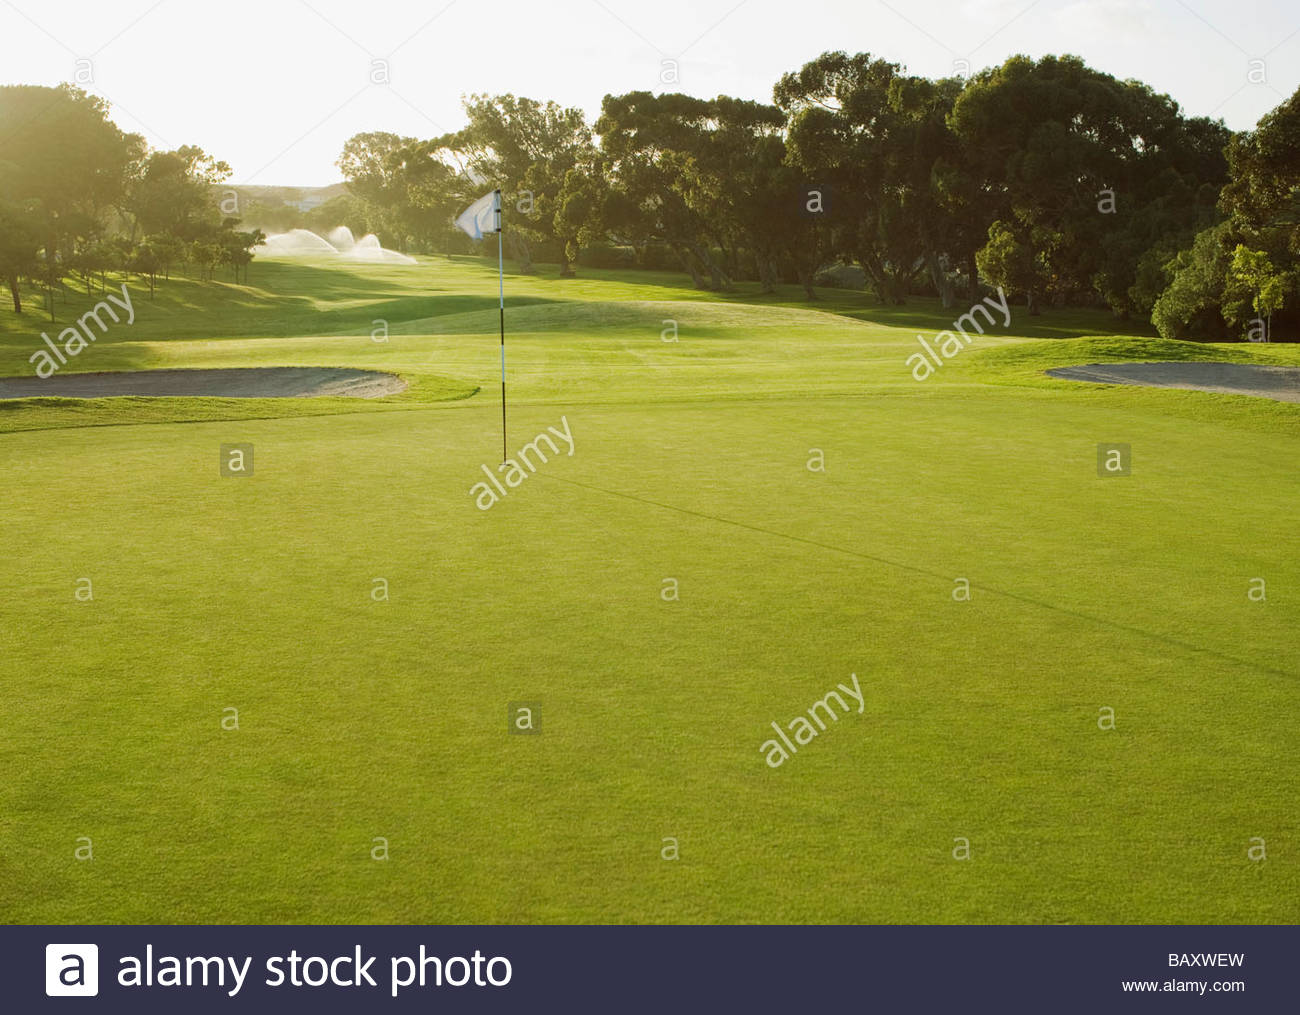 Flag on putting green of golf course - Stock Image